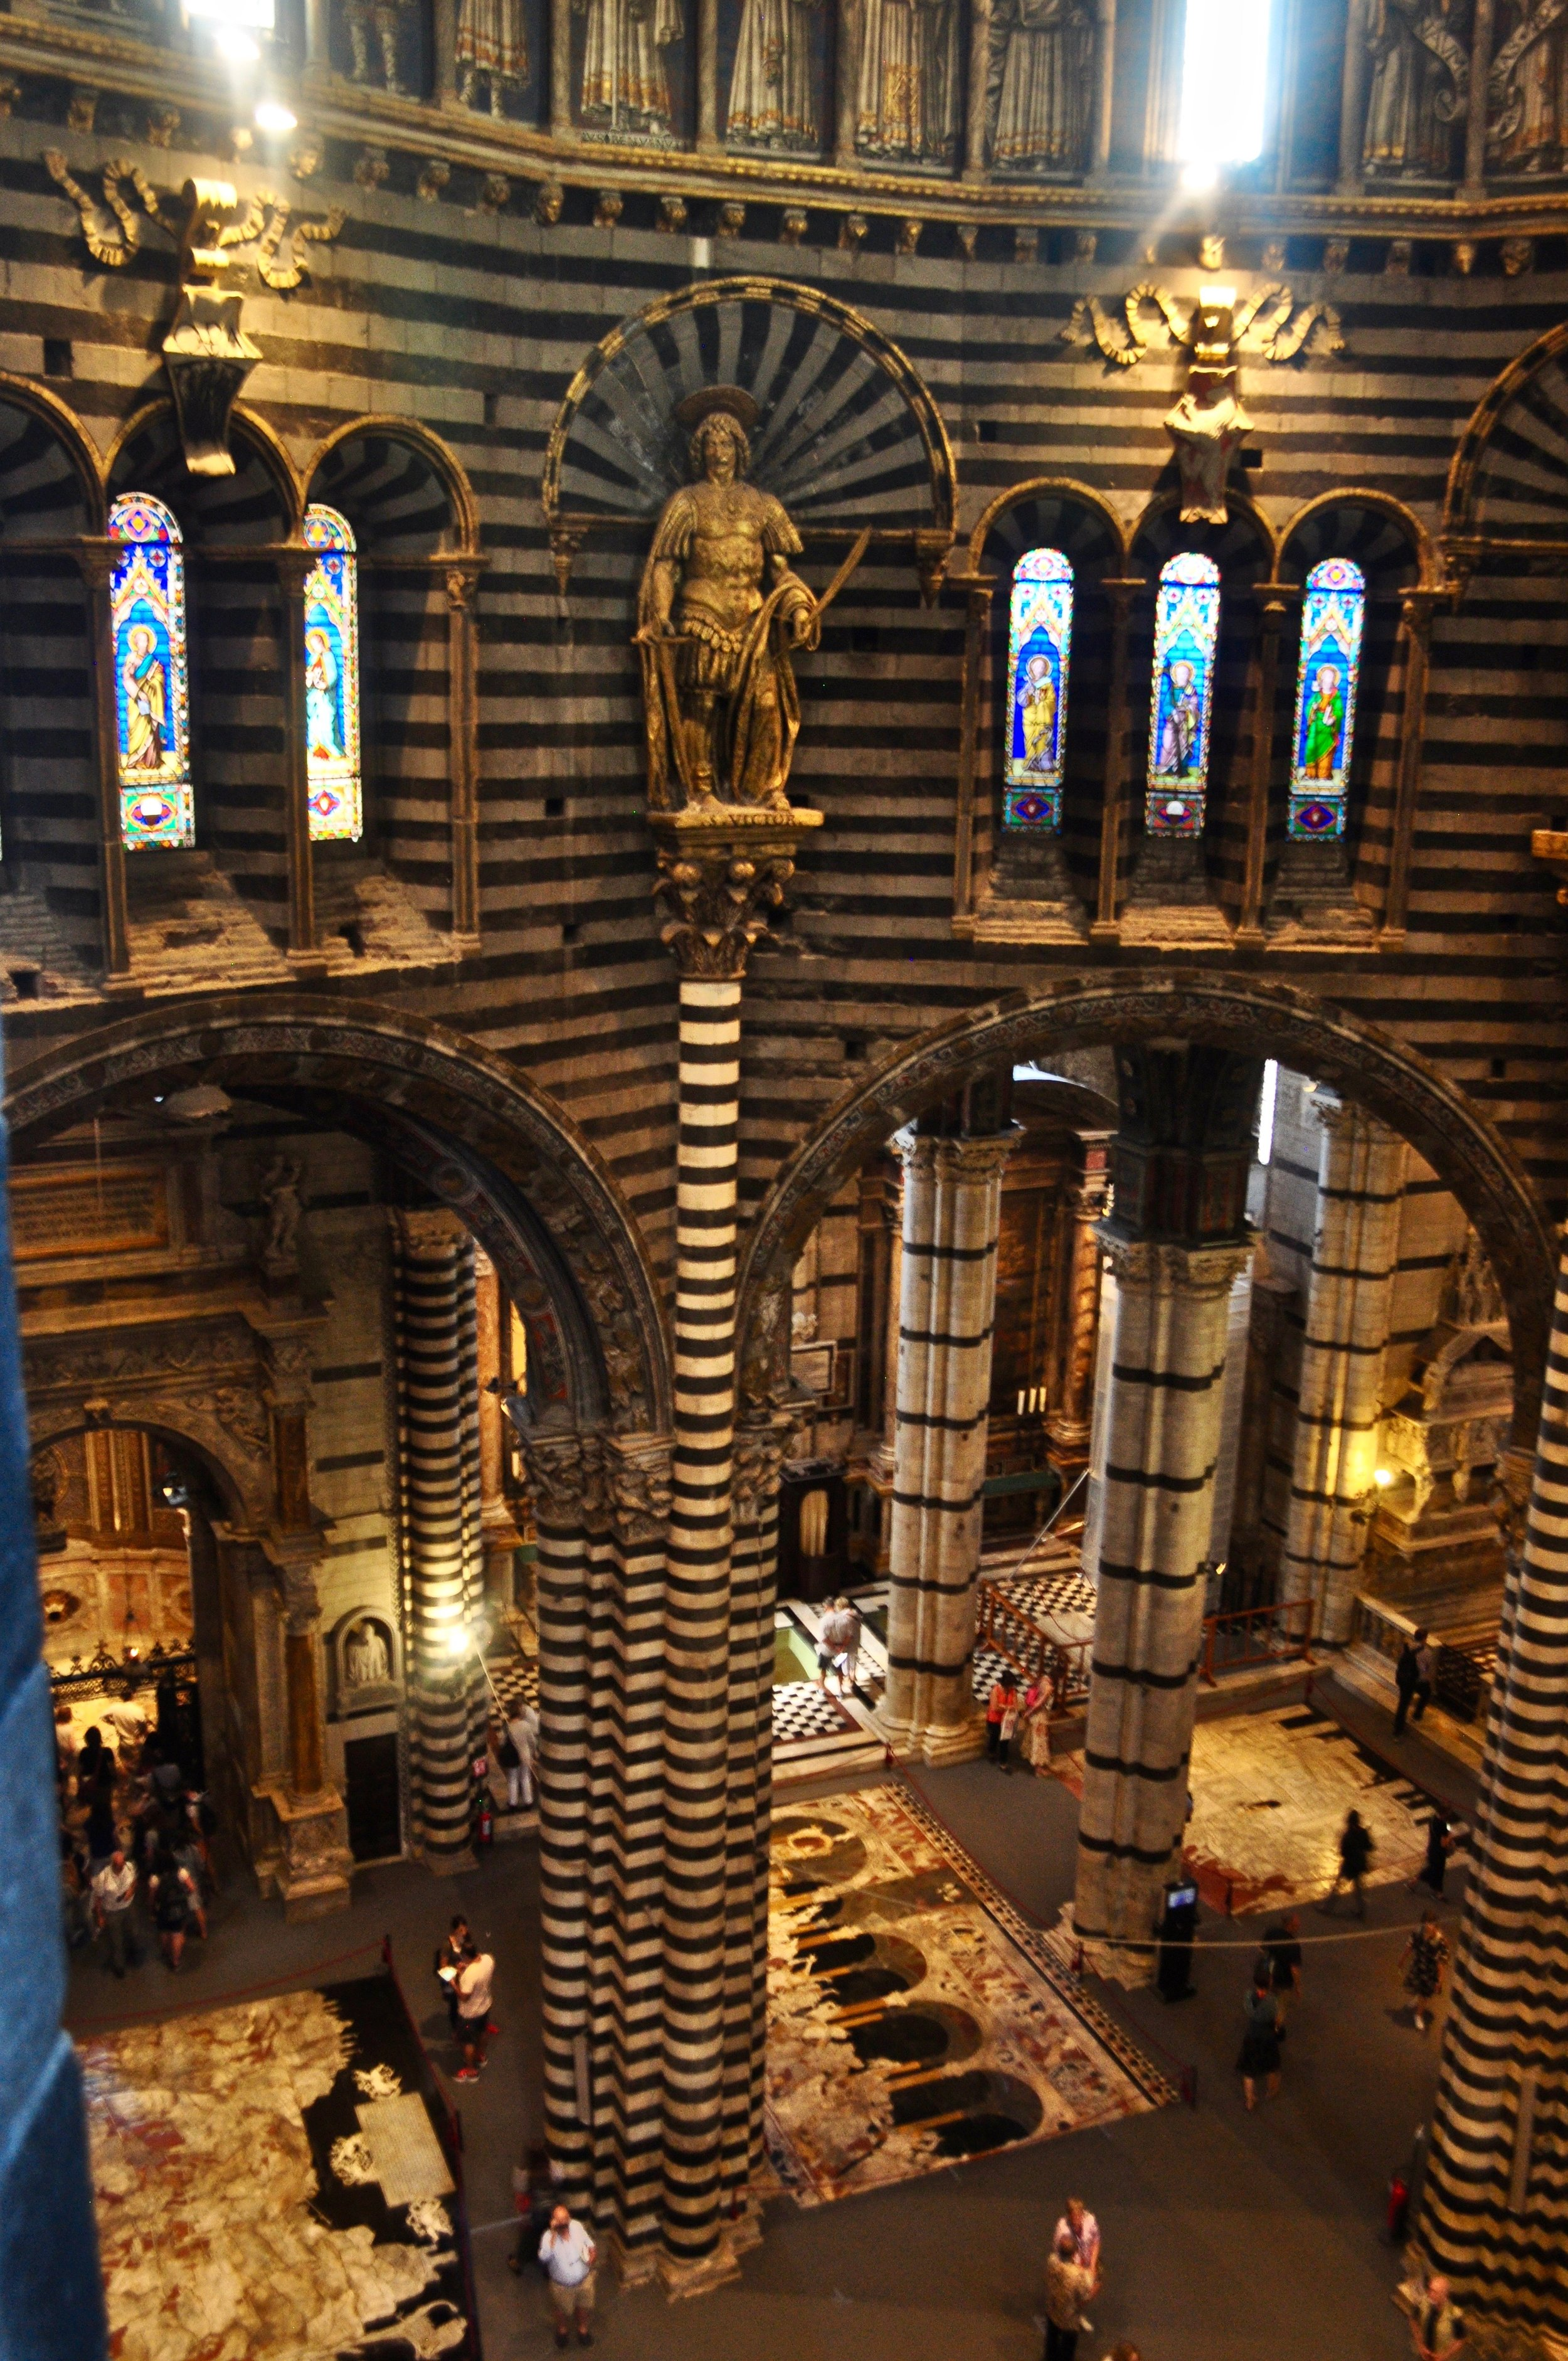 View of Siena Cathedral on Gate of Heaven Tour - Scenic Day Trip to Siena from Florence, Italy - A Happy Passport